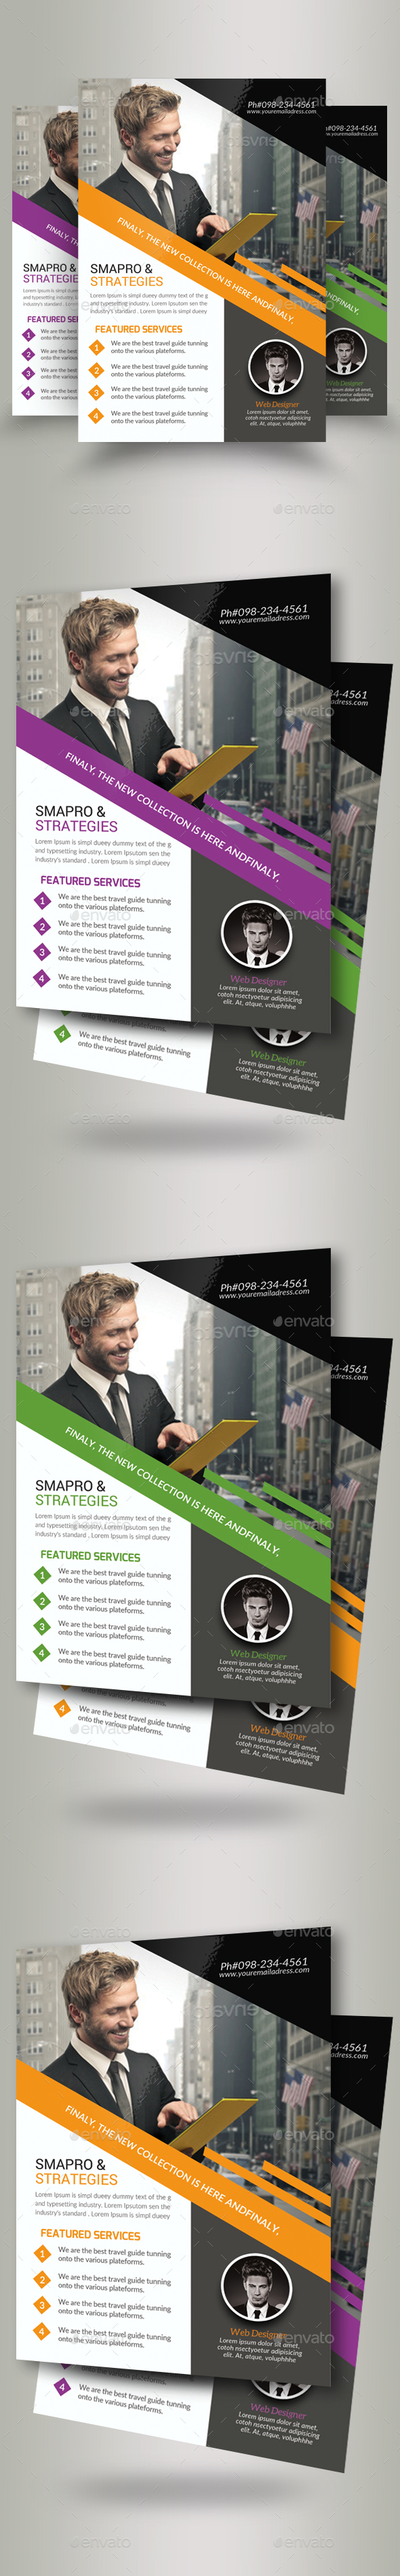 Marketing Consultant Agency Flyer - Corporate Flyers